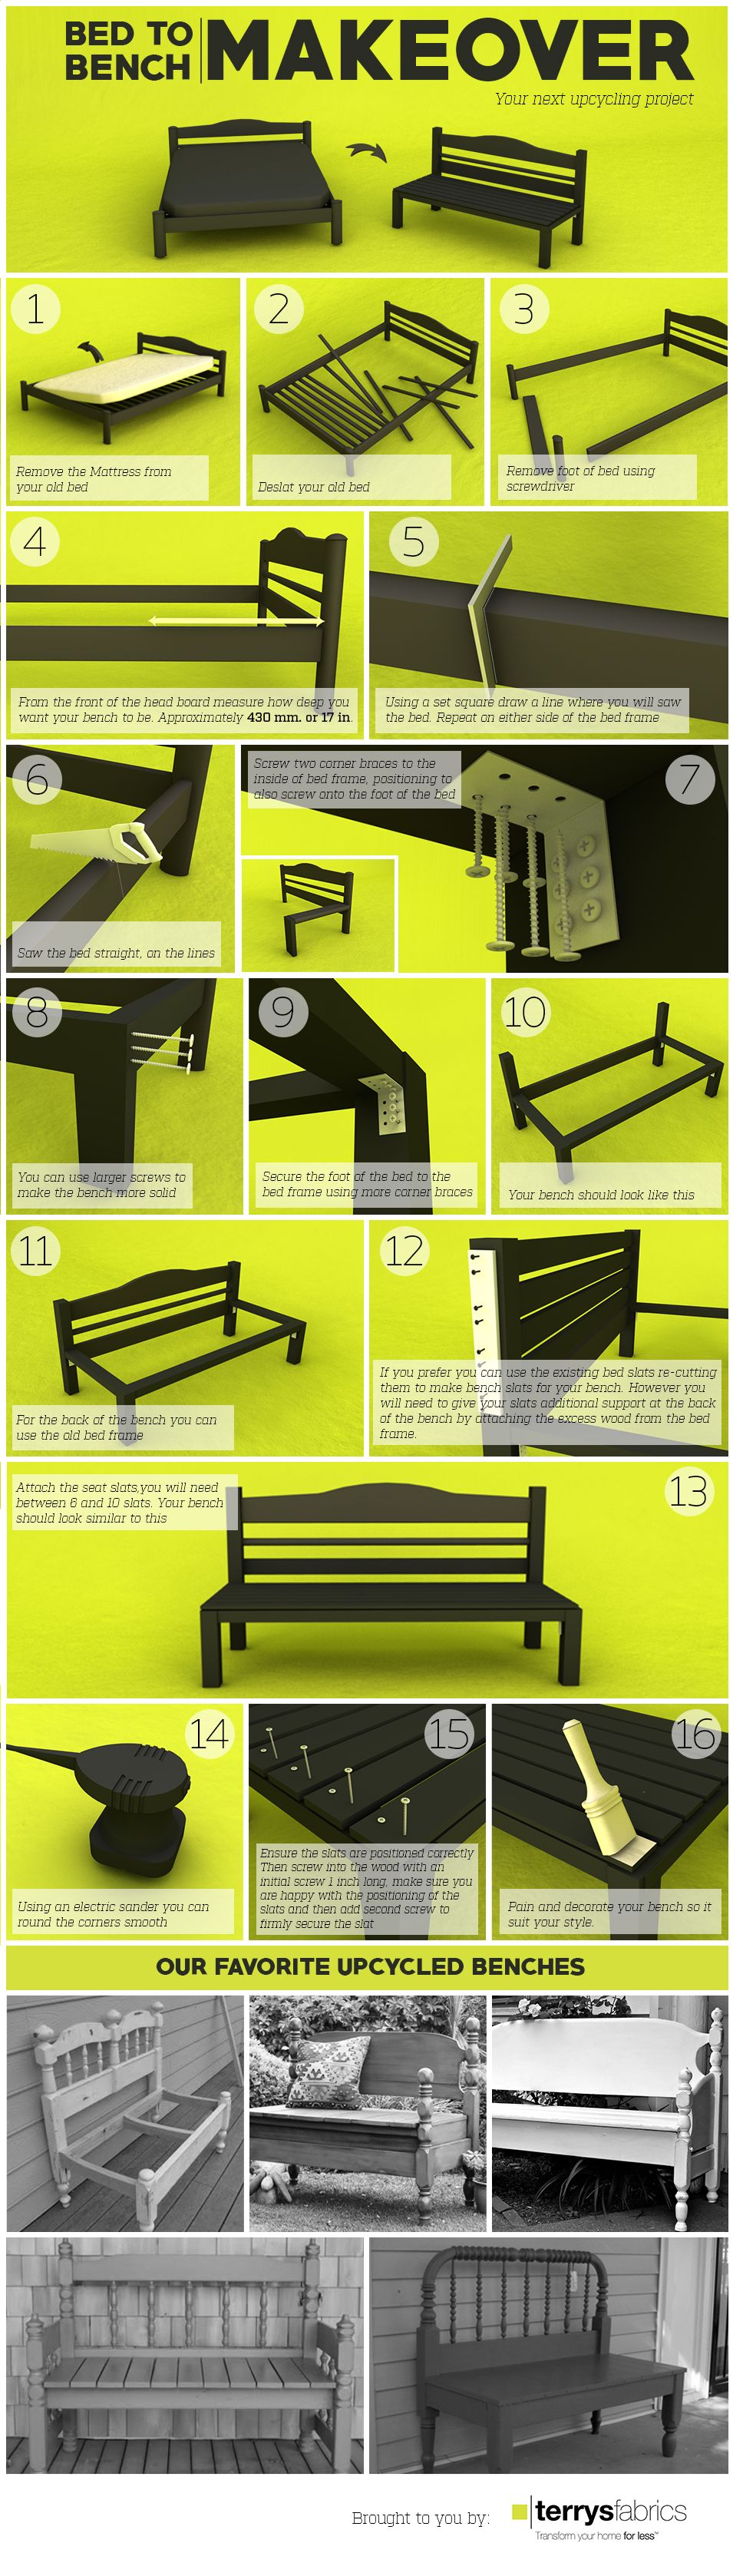 DIY Simple Instructions for Making a Bed into a Bench